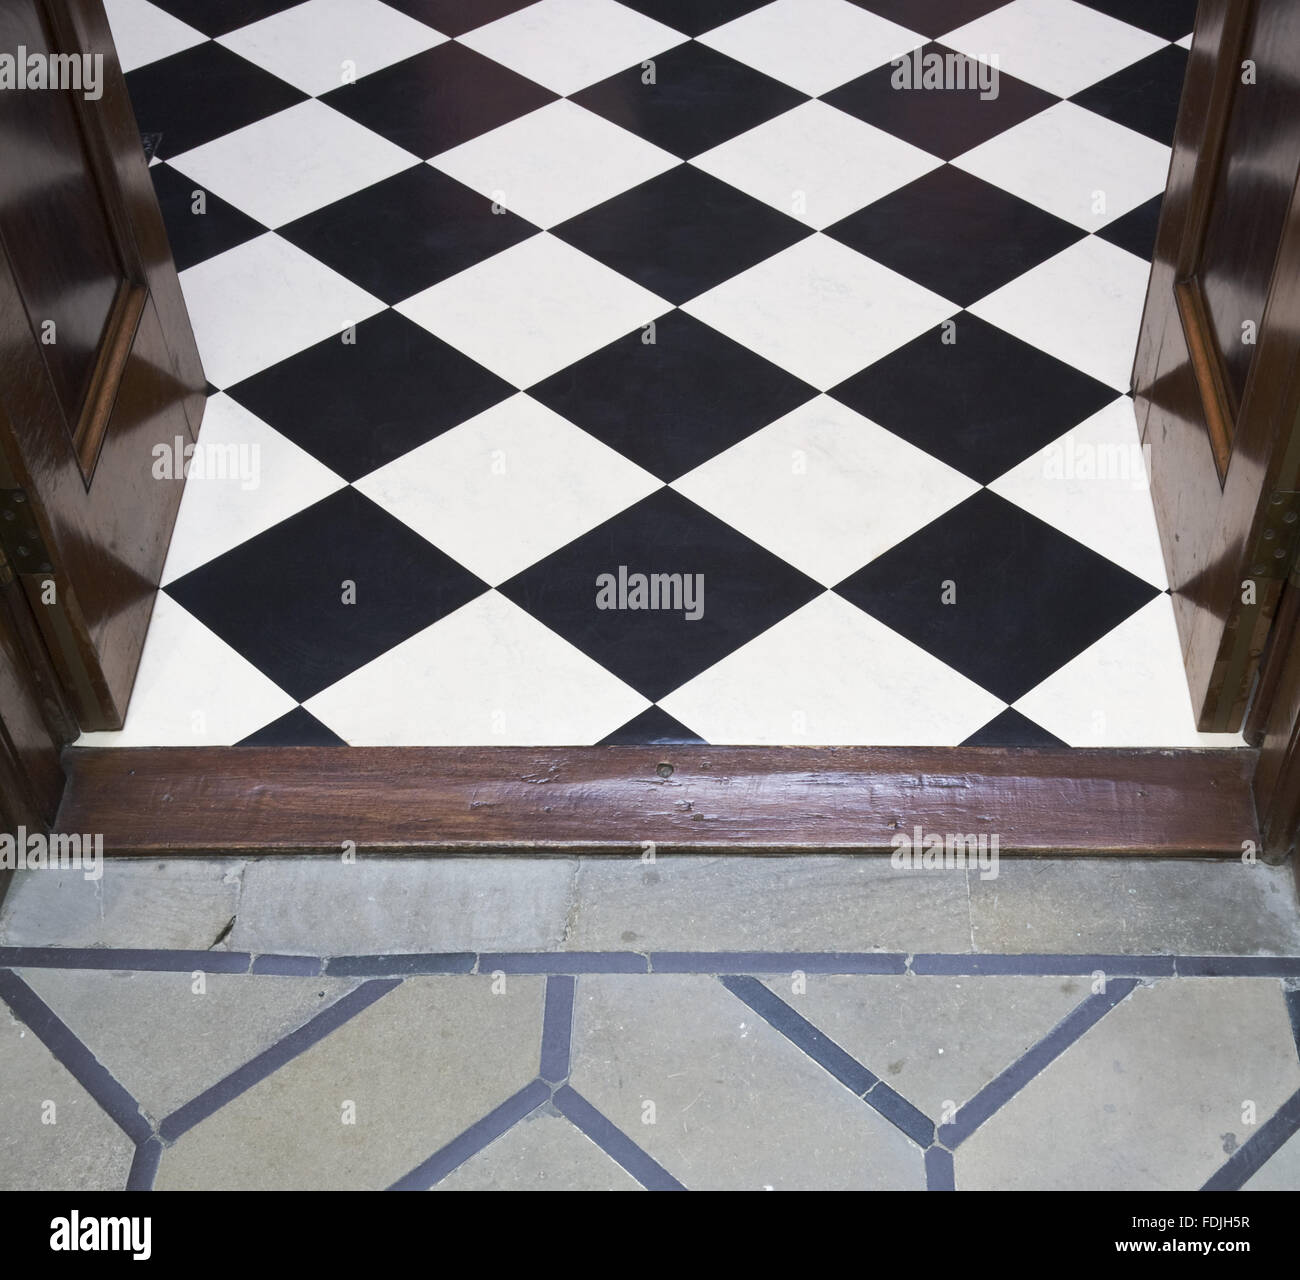 The meeting of the floors of the Hall with black and white linoleum